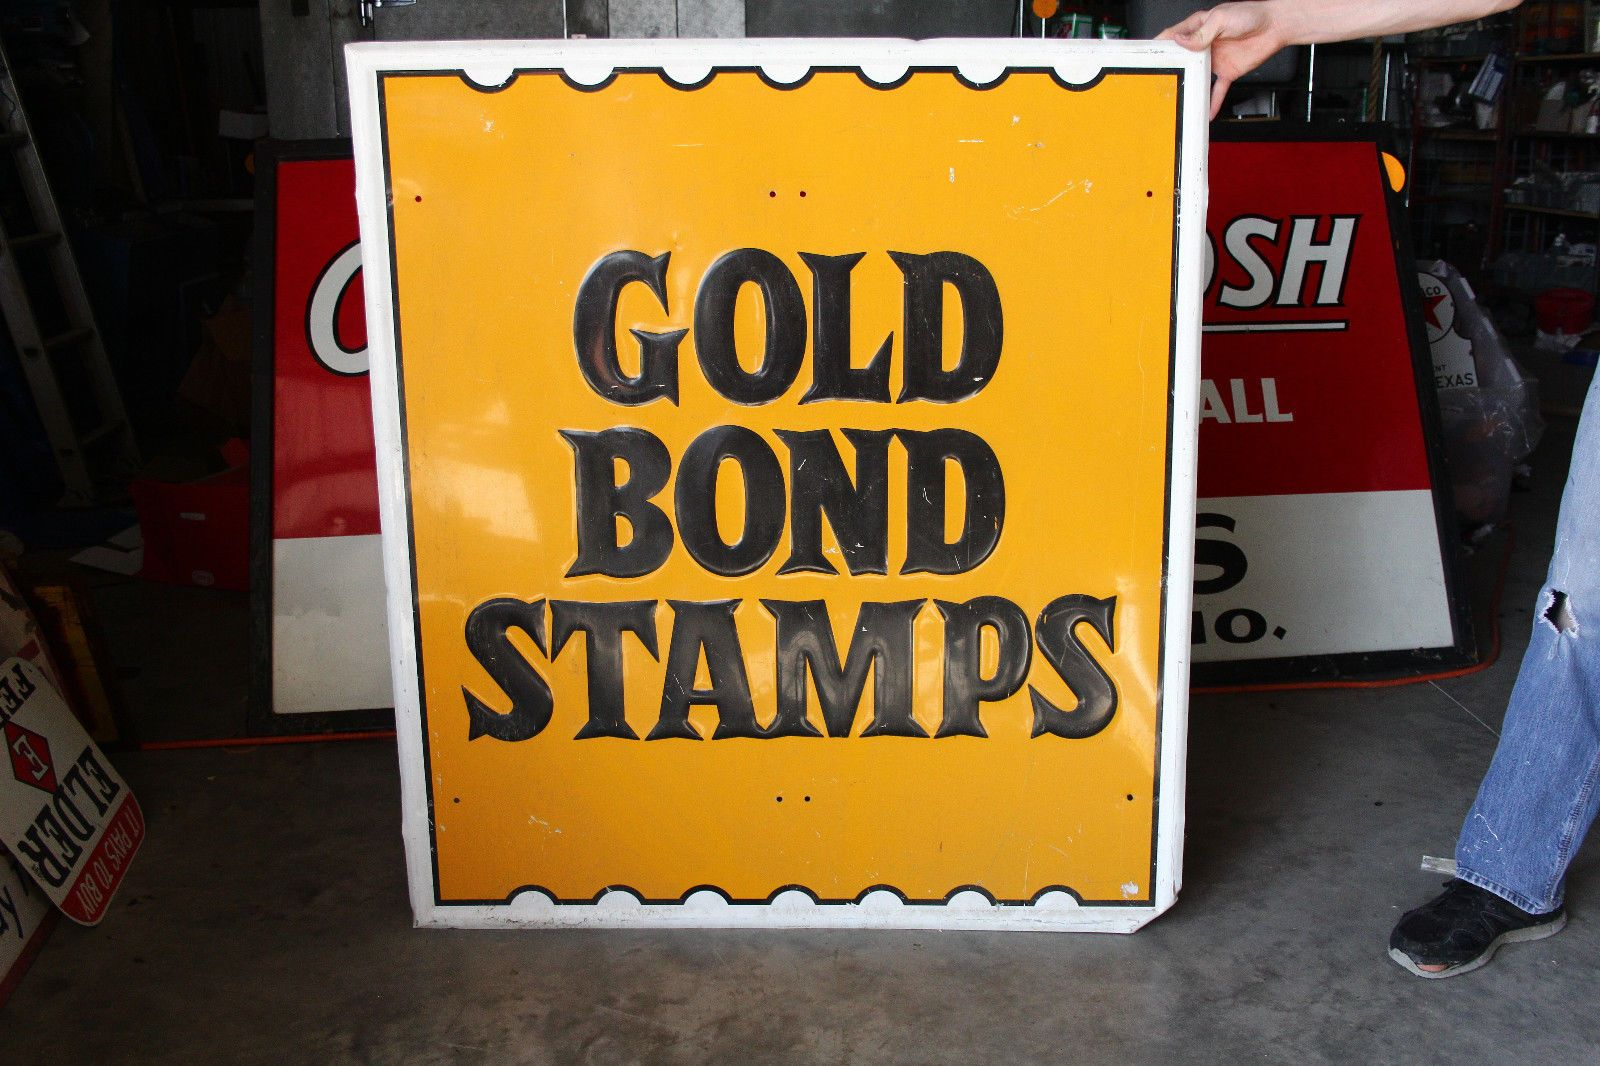 e12c6e12e12 Original Gold Bond Stamp Painted Sign. The dimensions of this item are 47  1 2 in by 42 1 2 in.Thank you for looking and contact me with questions ...